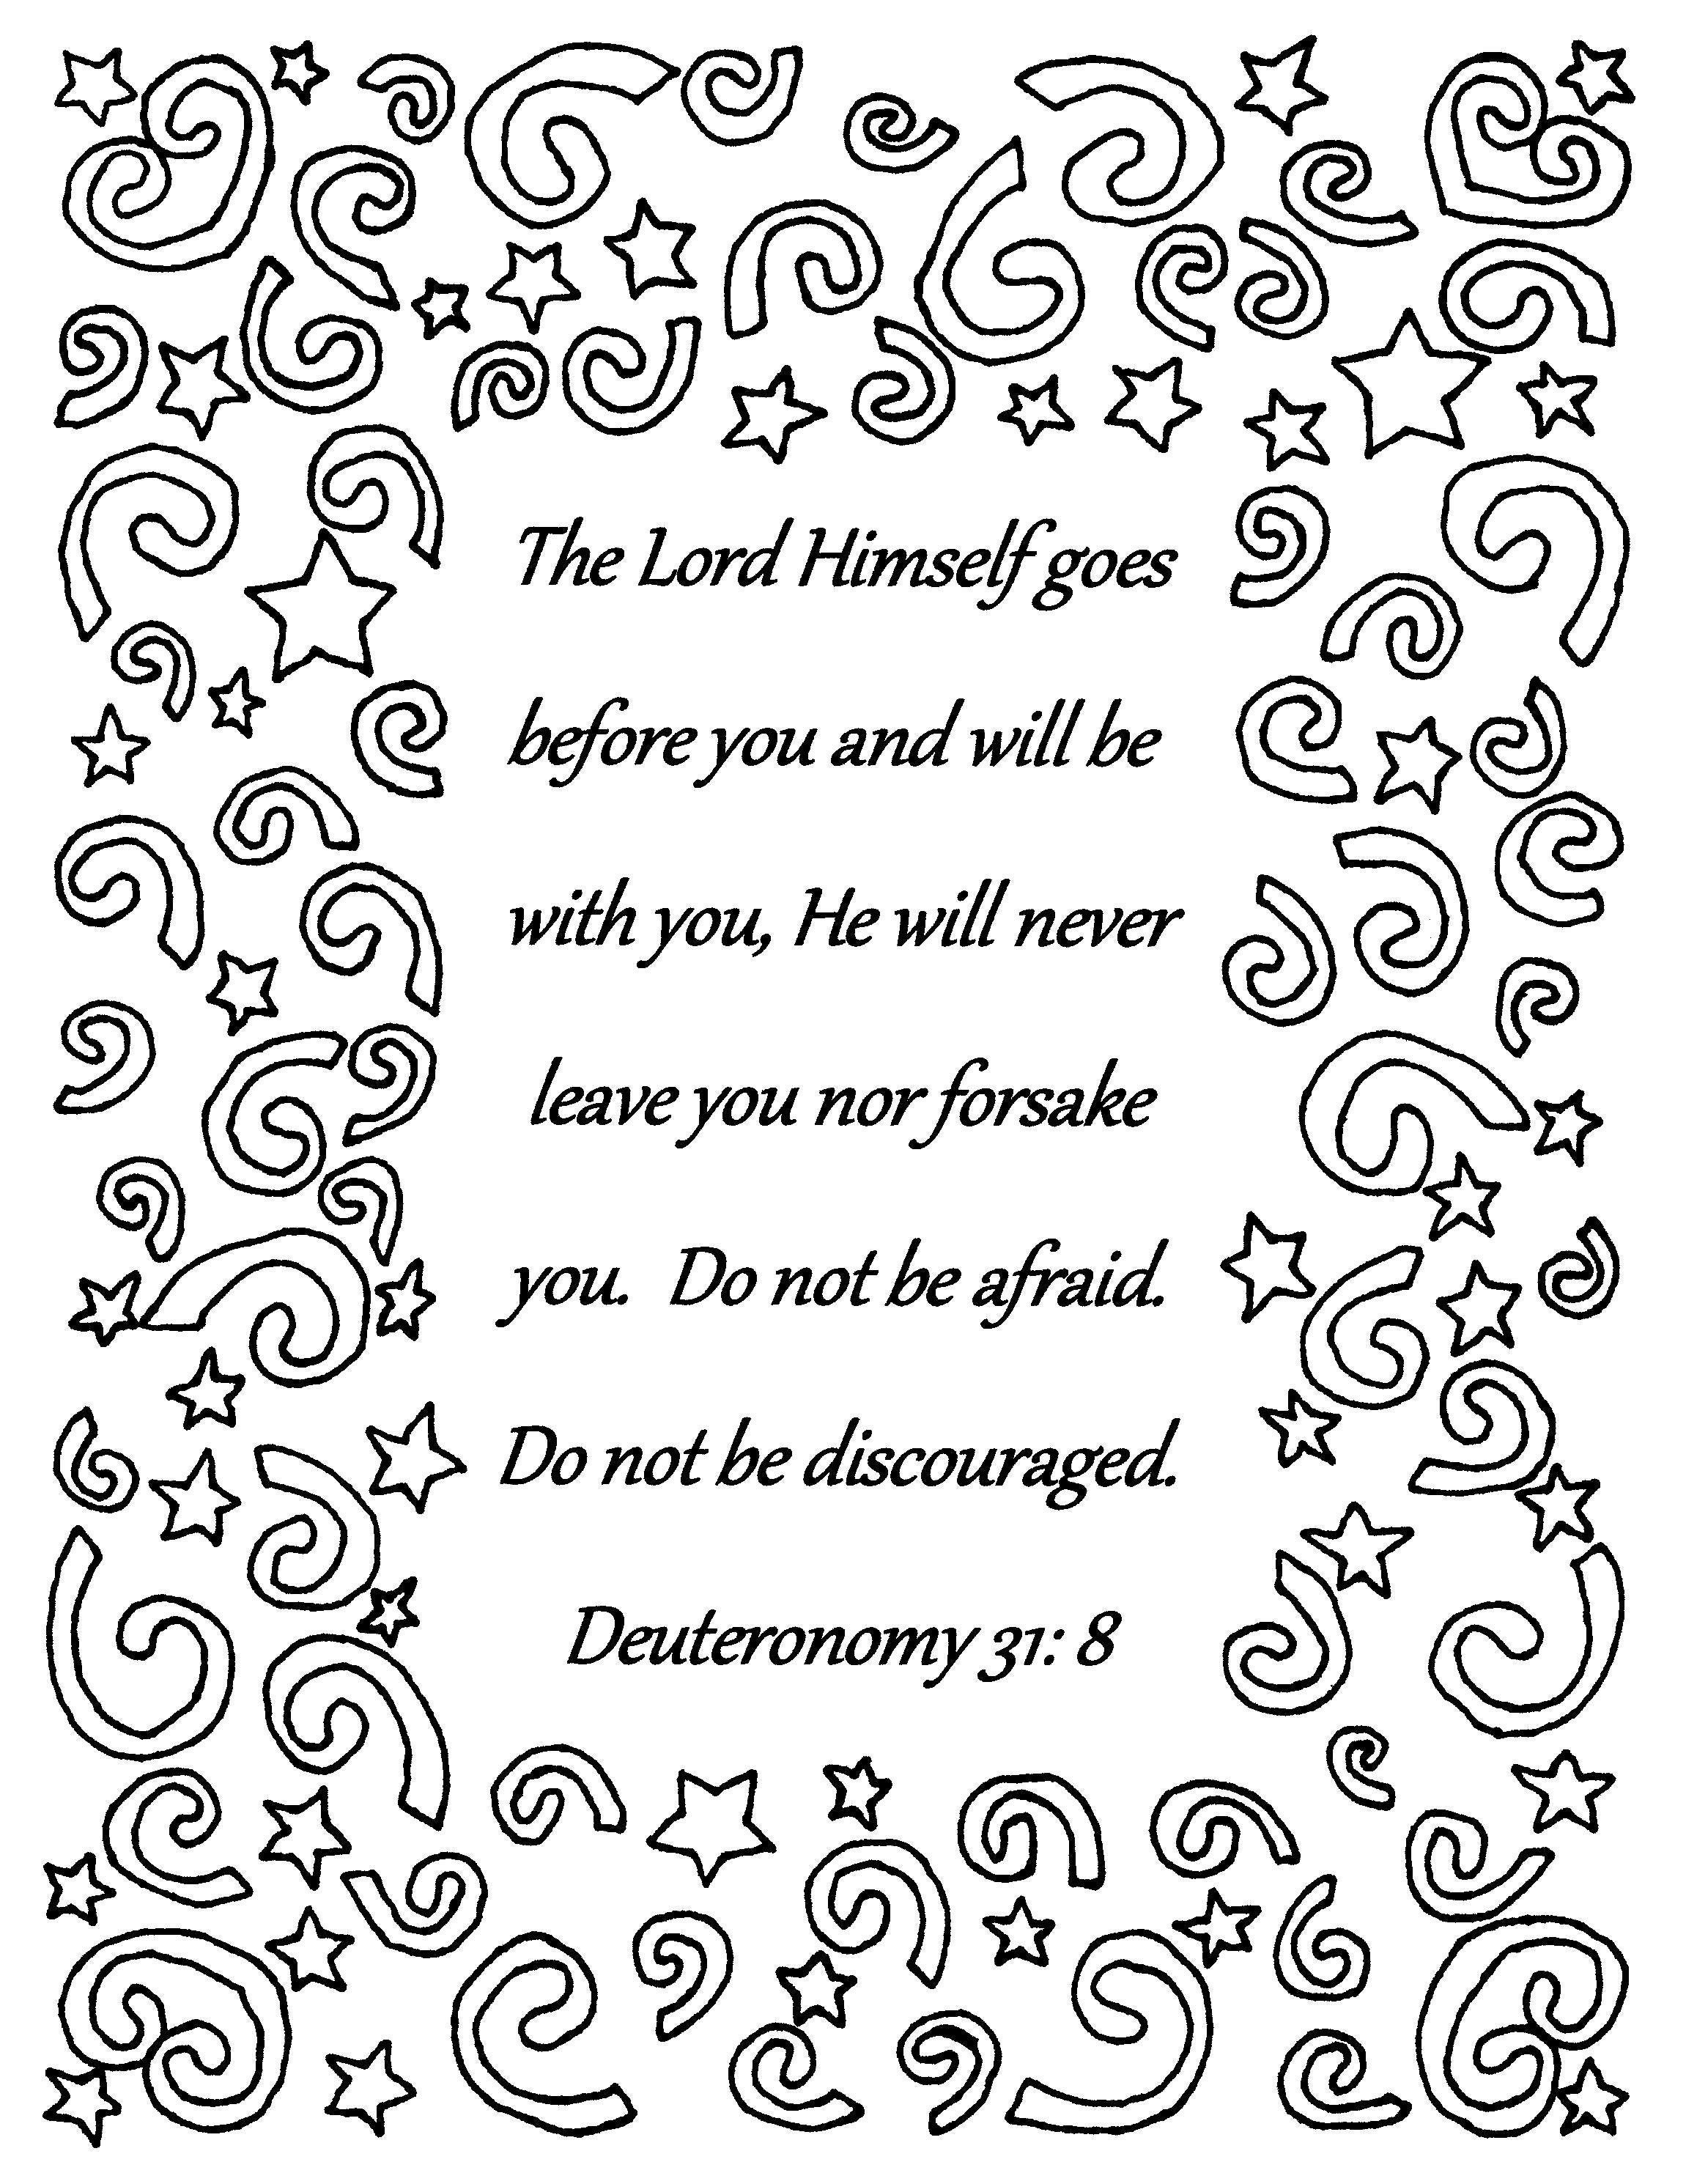 The Lord Himself Goes Before You Deuteronomy 31 8 Bible Verse